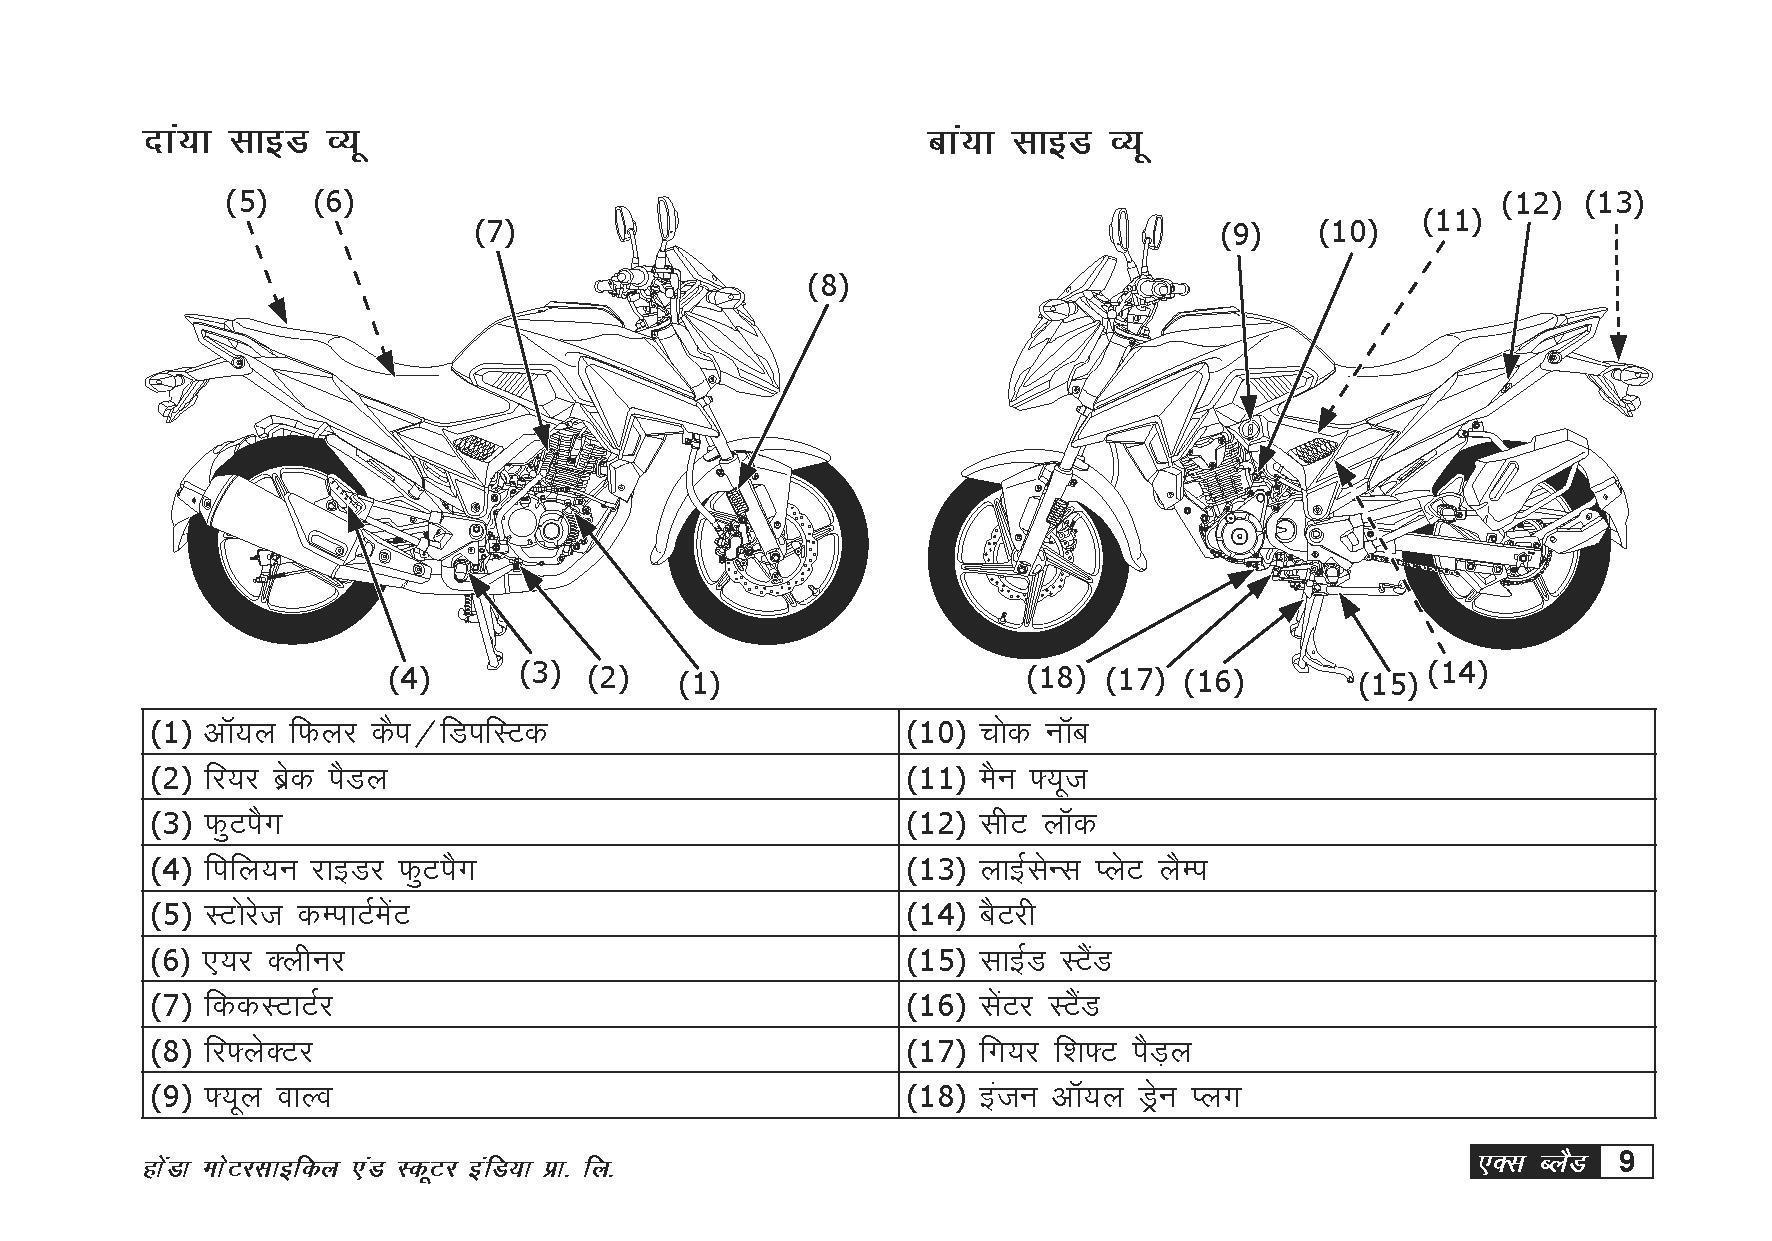 Wiring Diagram Of Honda Livo